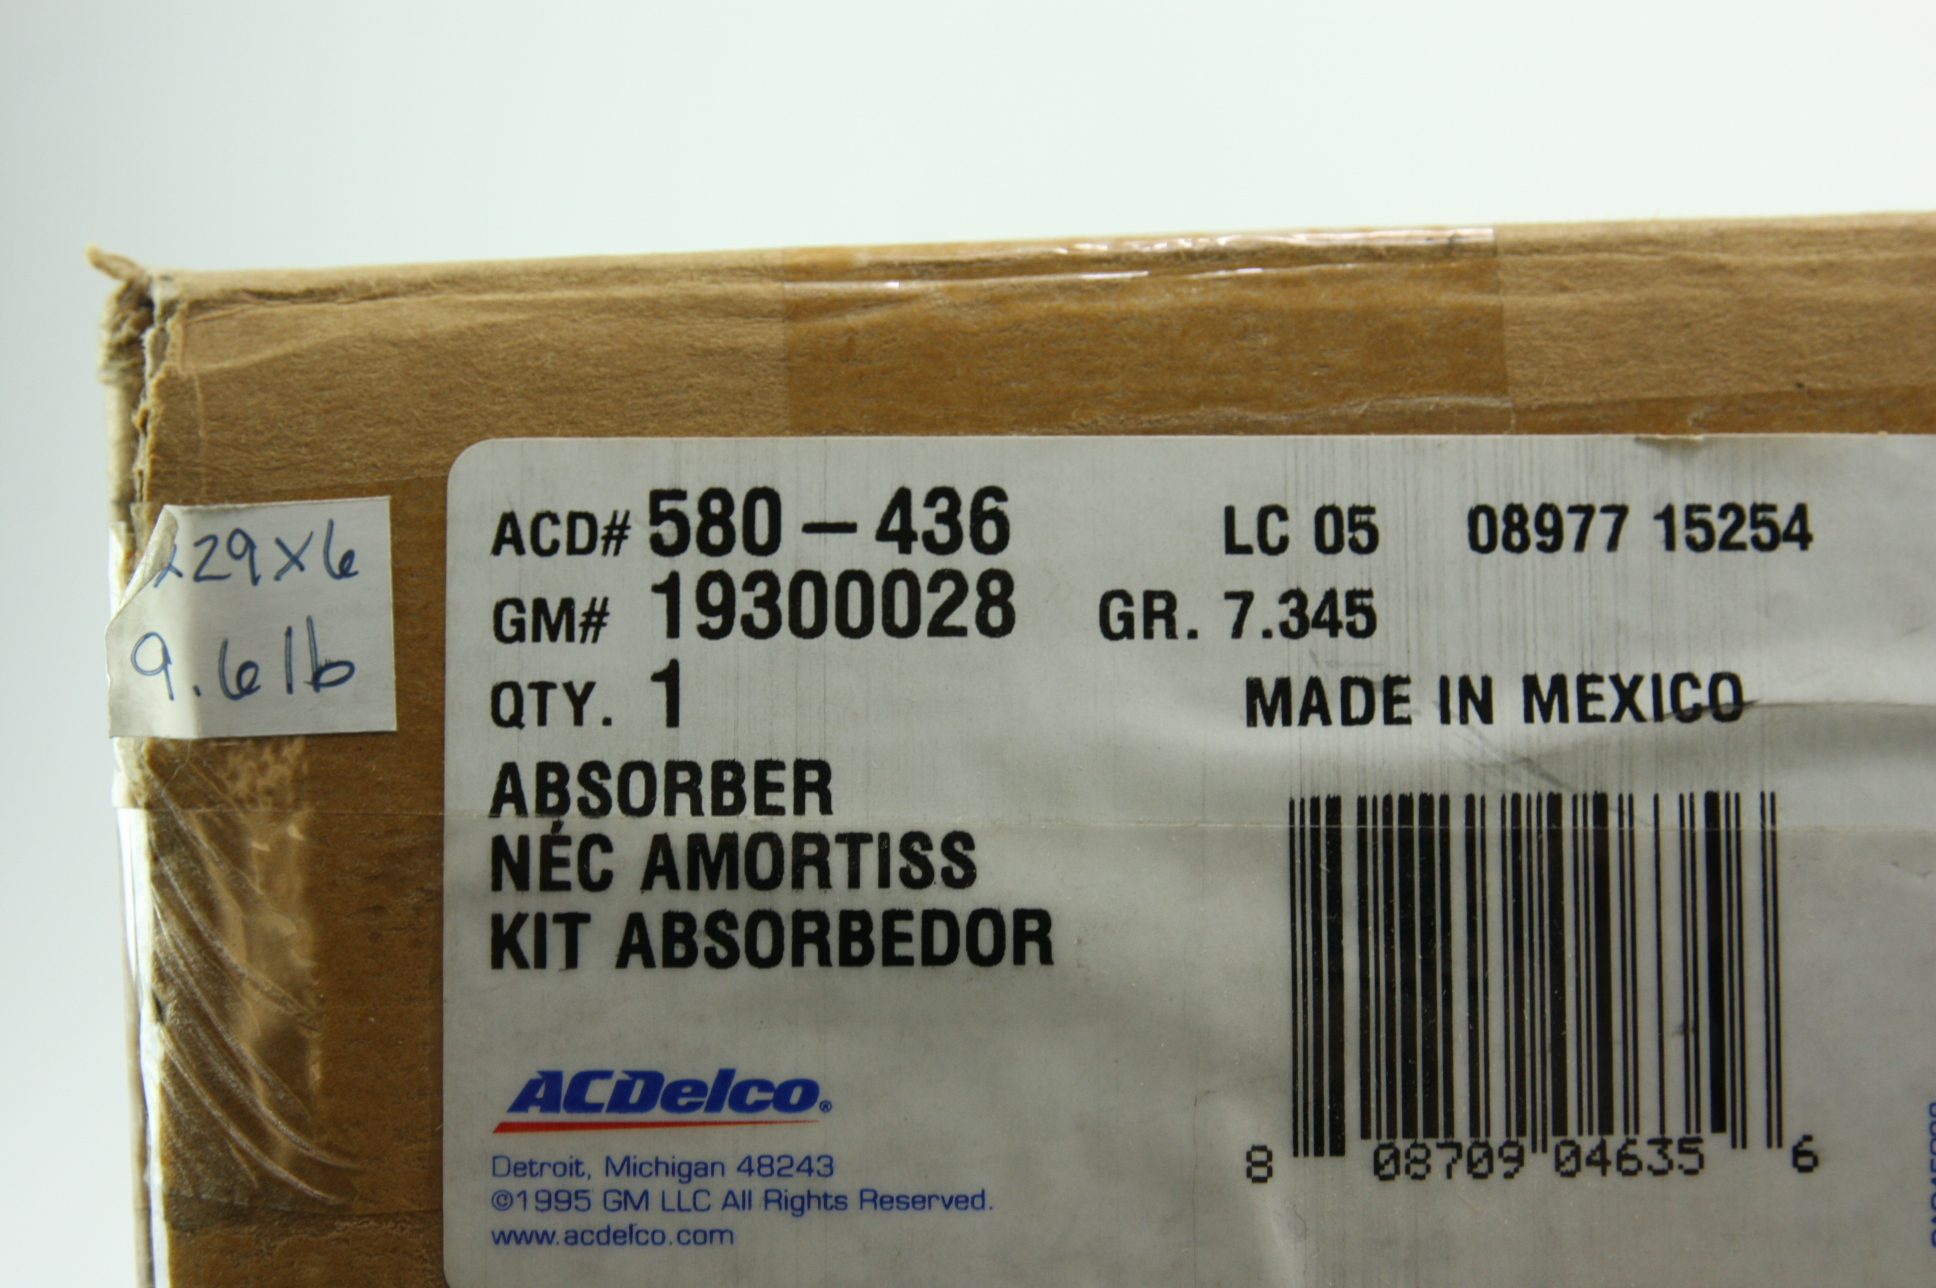 New OEM 580-436 GM 19300028 Shock Absorber Kit Front LH/RH 07-10 Cadillac STS - image 2